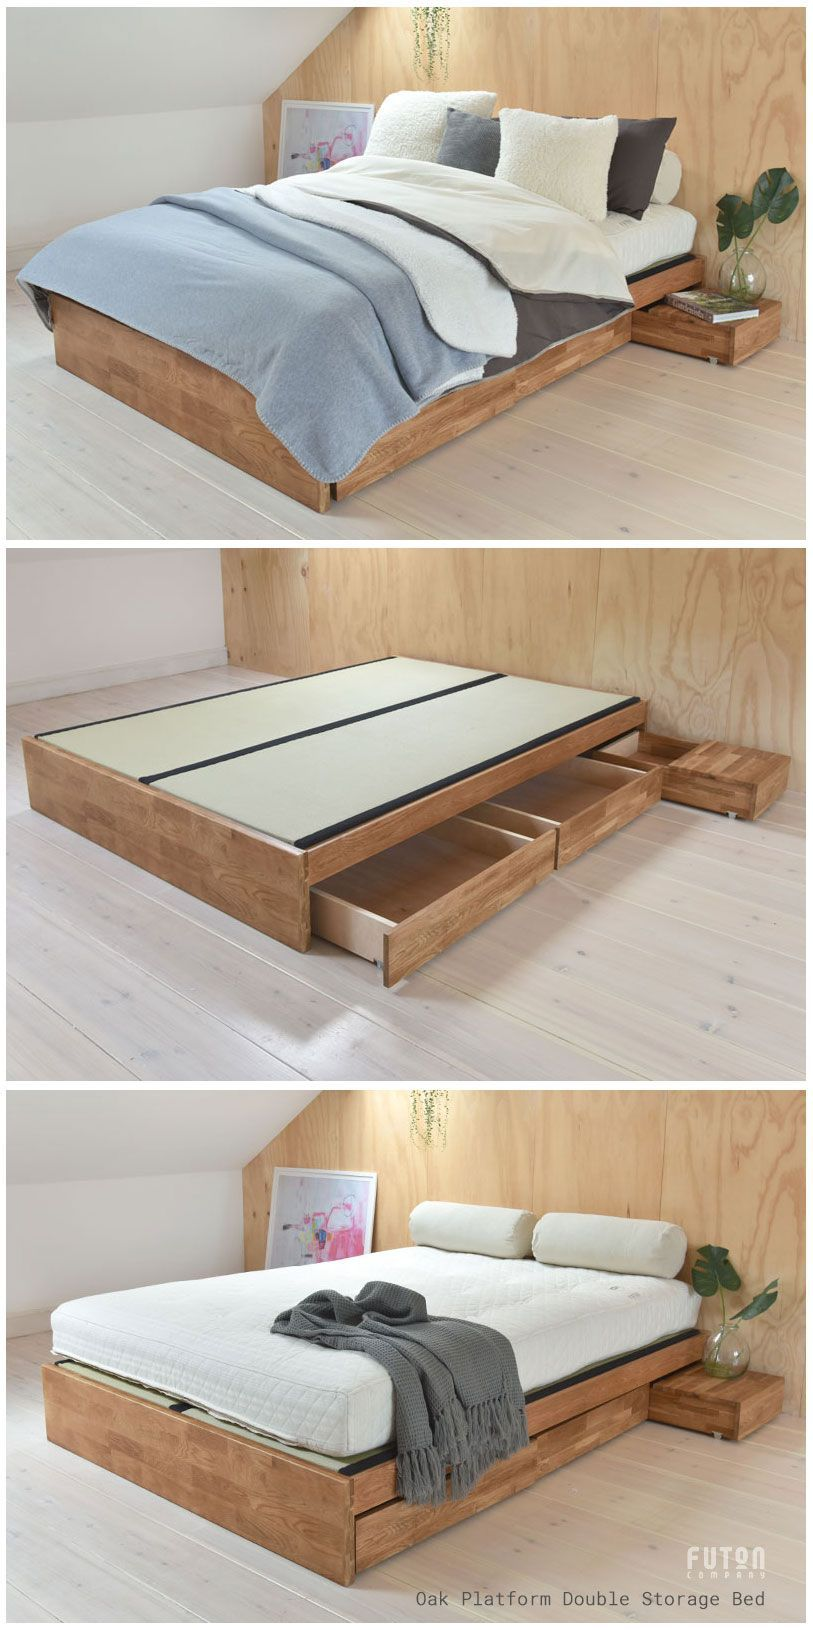 Oak Platform Double Storage Bed Double Bed With Storage Bed